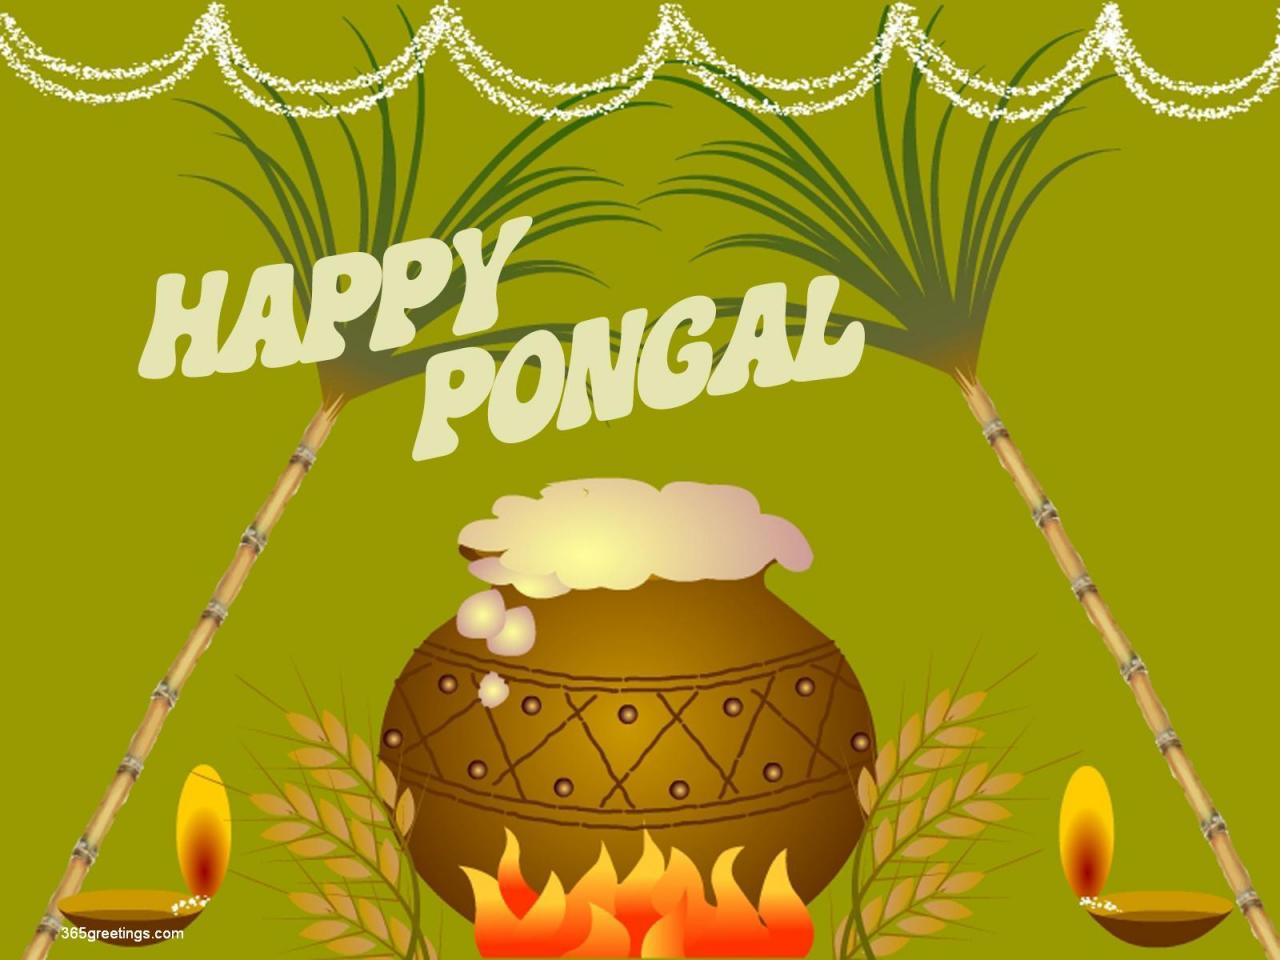 Free Greeting Cards Download Cards For Festival Pongal Greetings